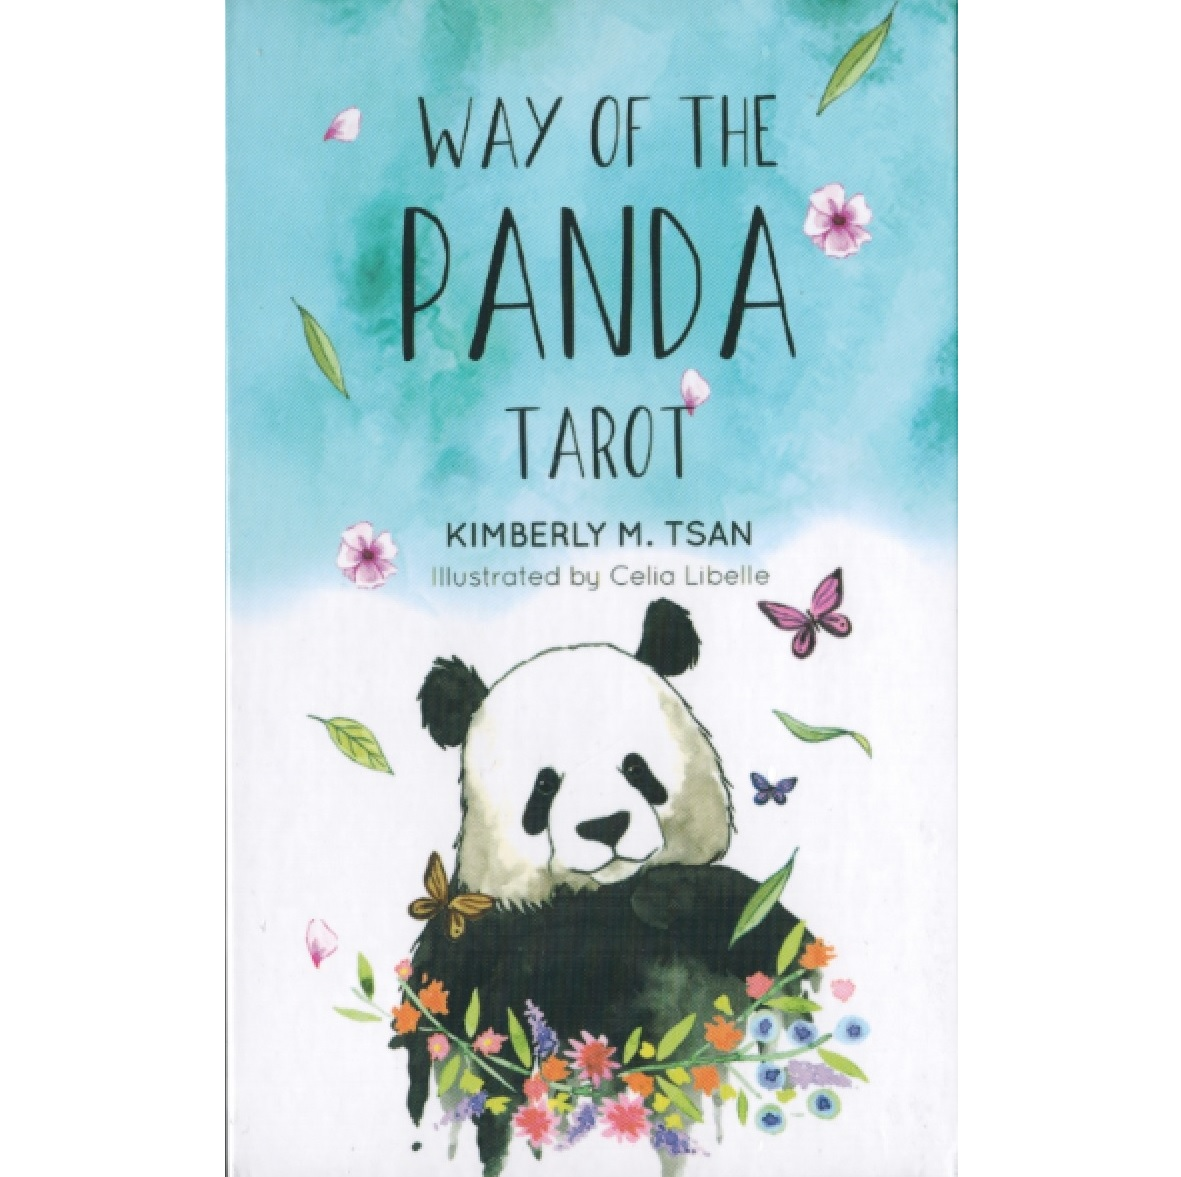 Way of the Panda Tarot 2